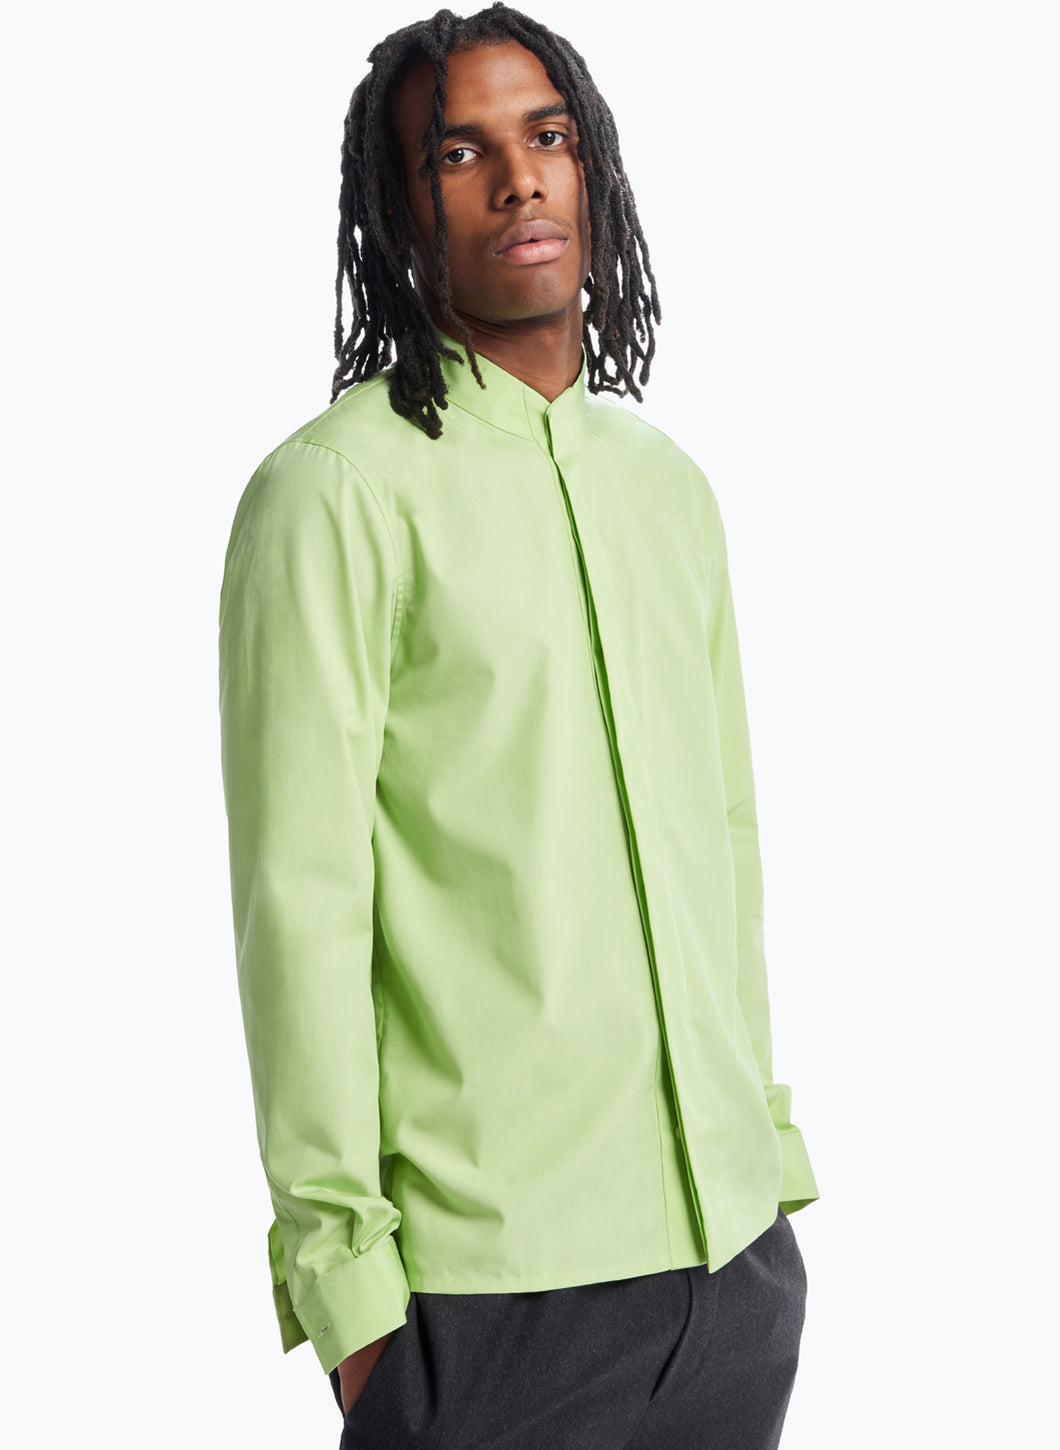 Origami Collar Shirt in Lime Green Poplin